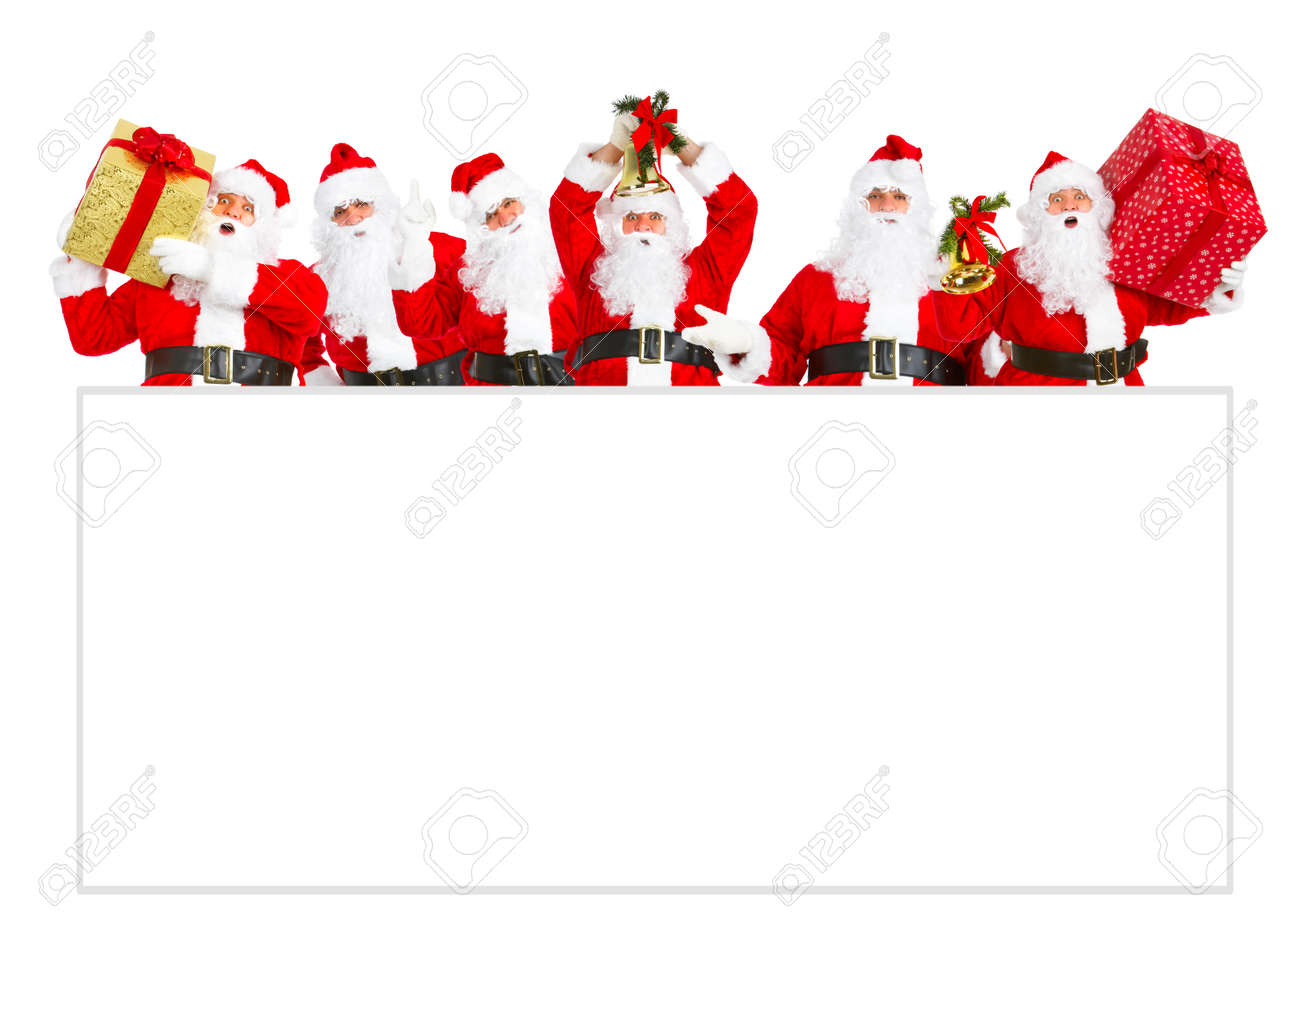 Santa Claus with poster. Stock Photo - 11081703